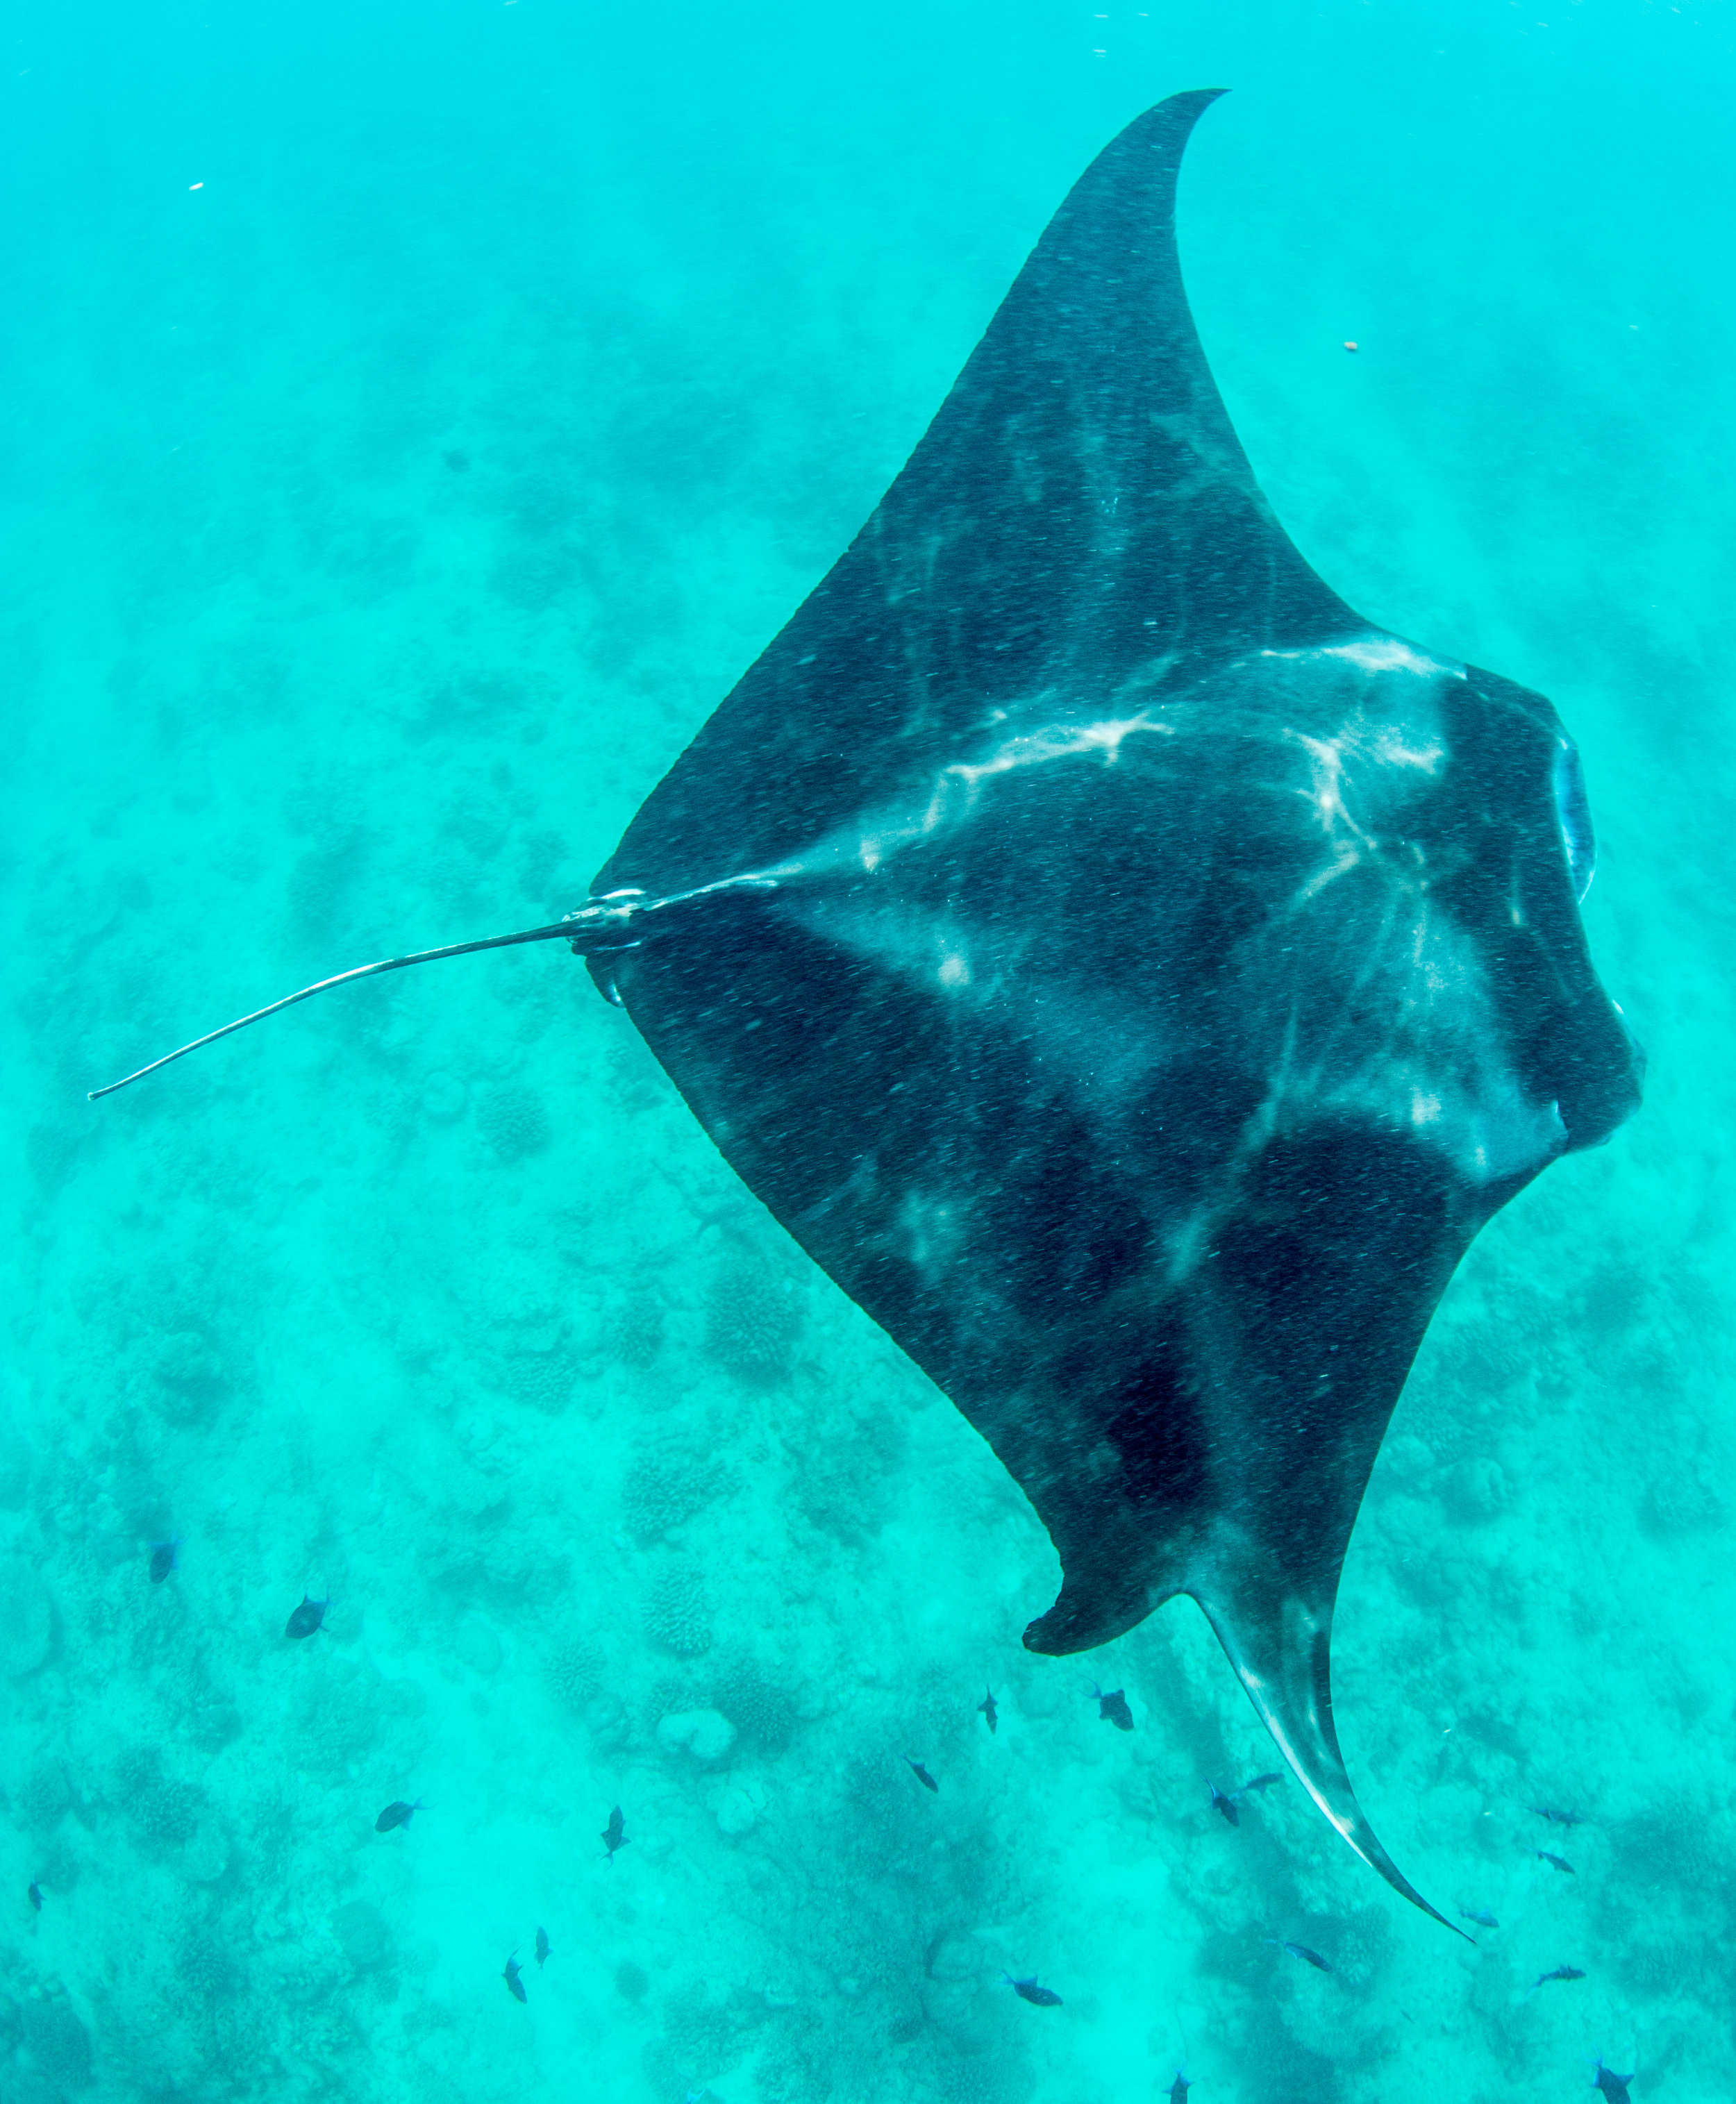 Sighted 22nd February 2017. Here you can clearly see this manta's split pectoral fin.